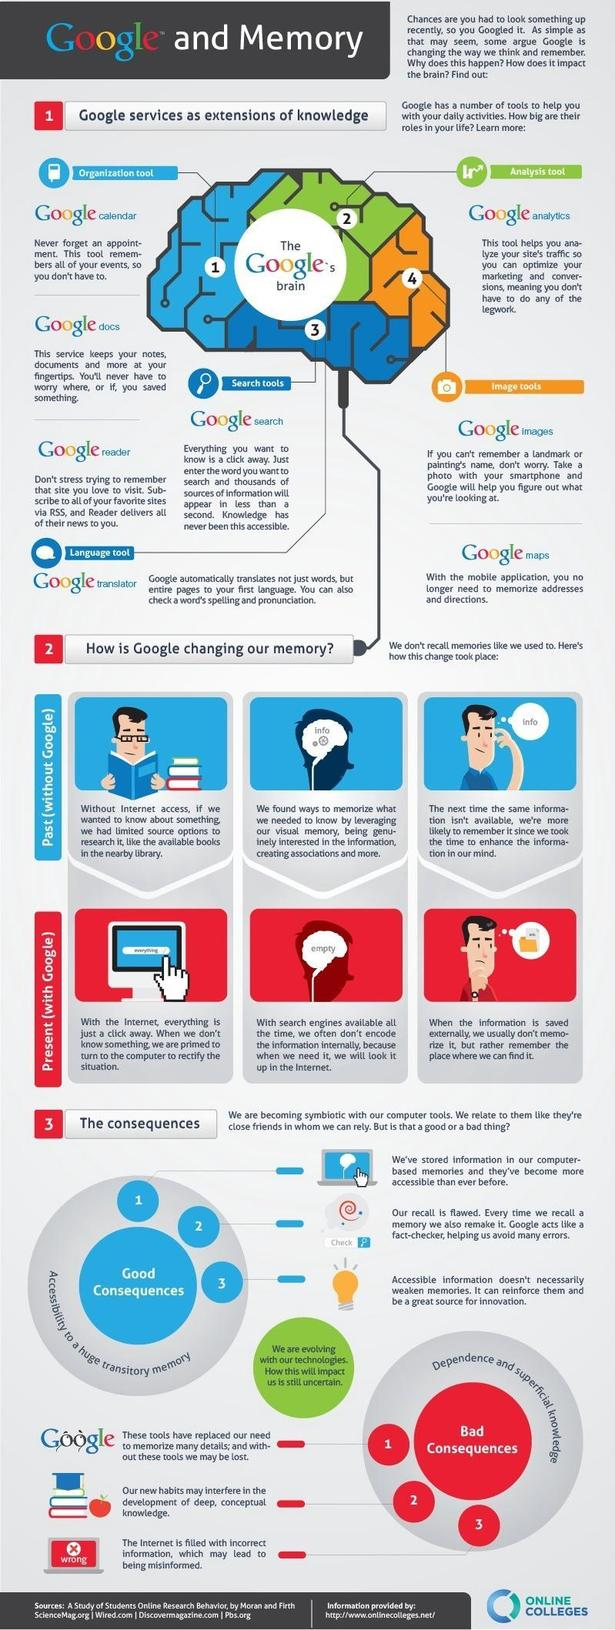 Google-And-Memory-infographic